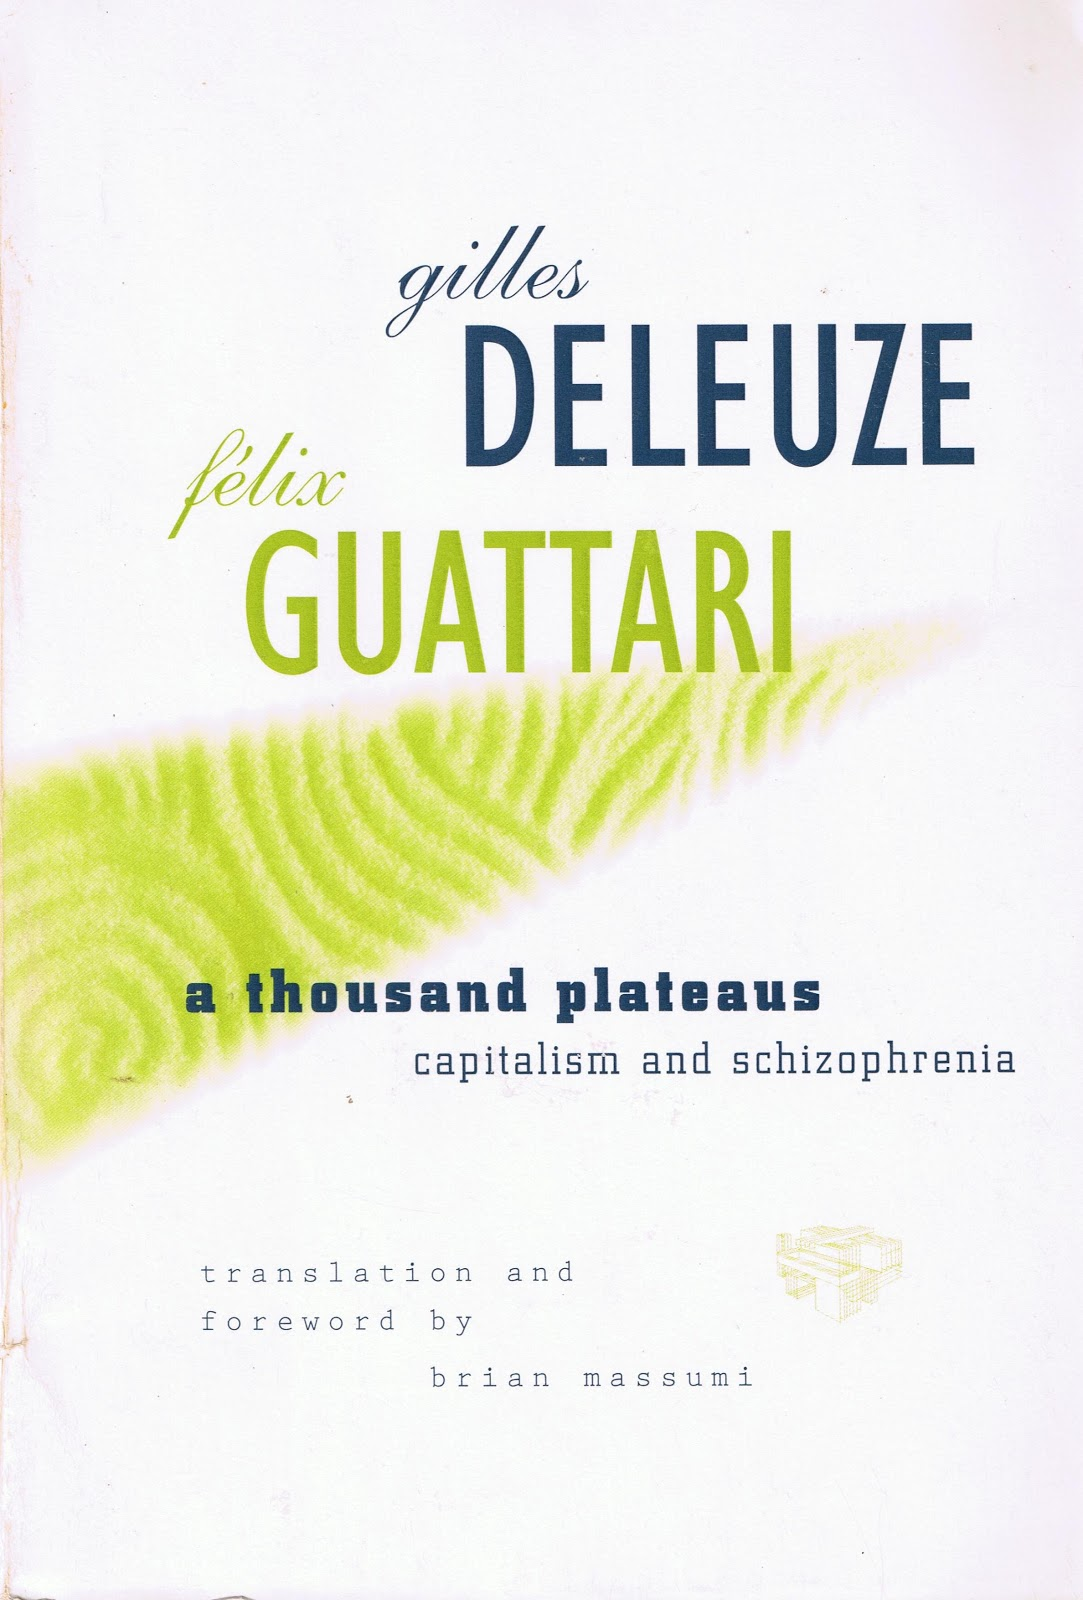 A Thousand Plateaus by Deleuze and Guattarri